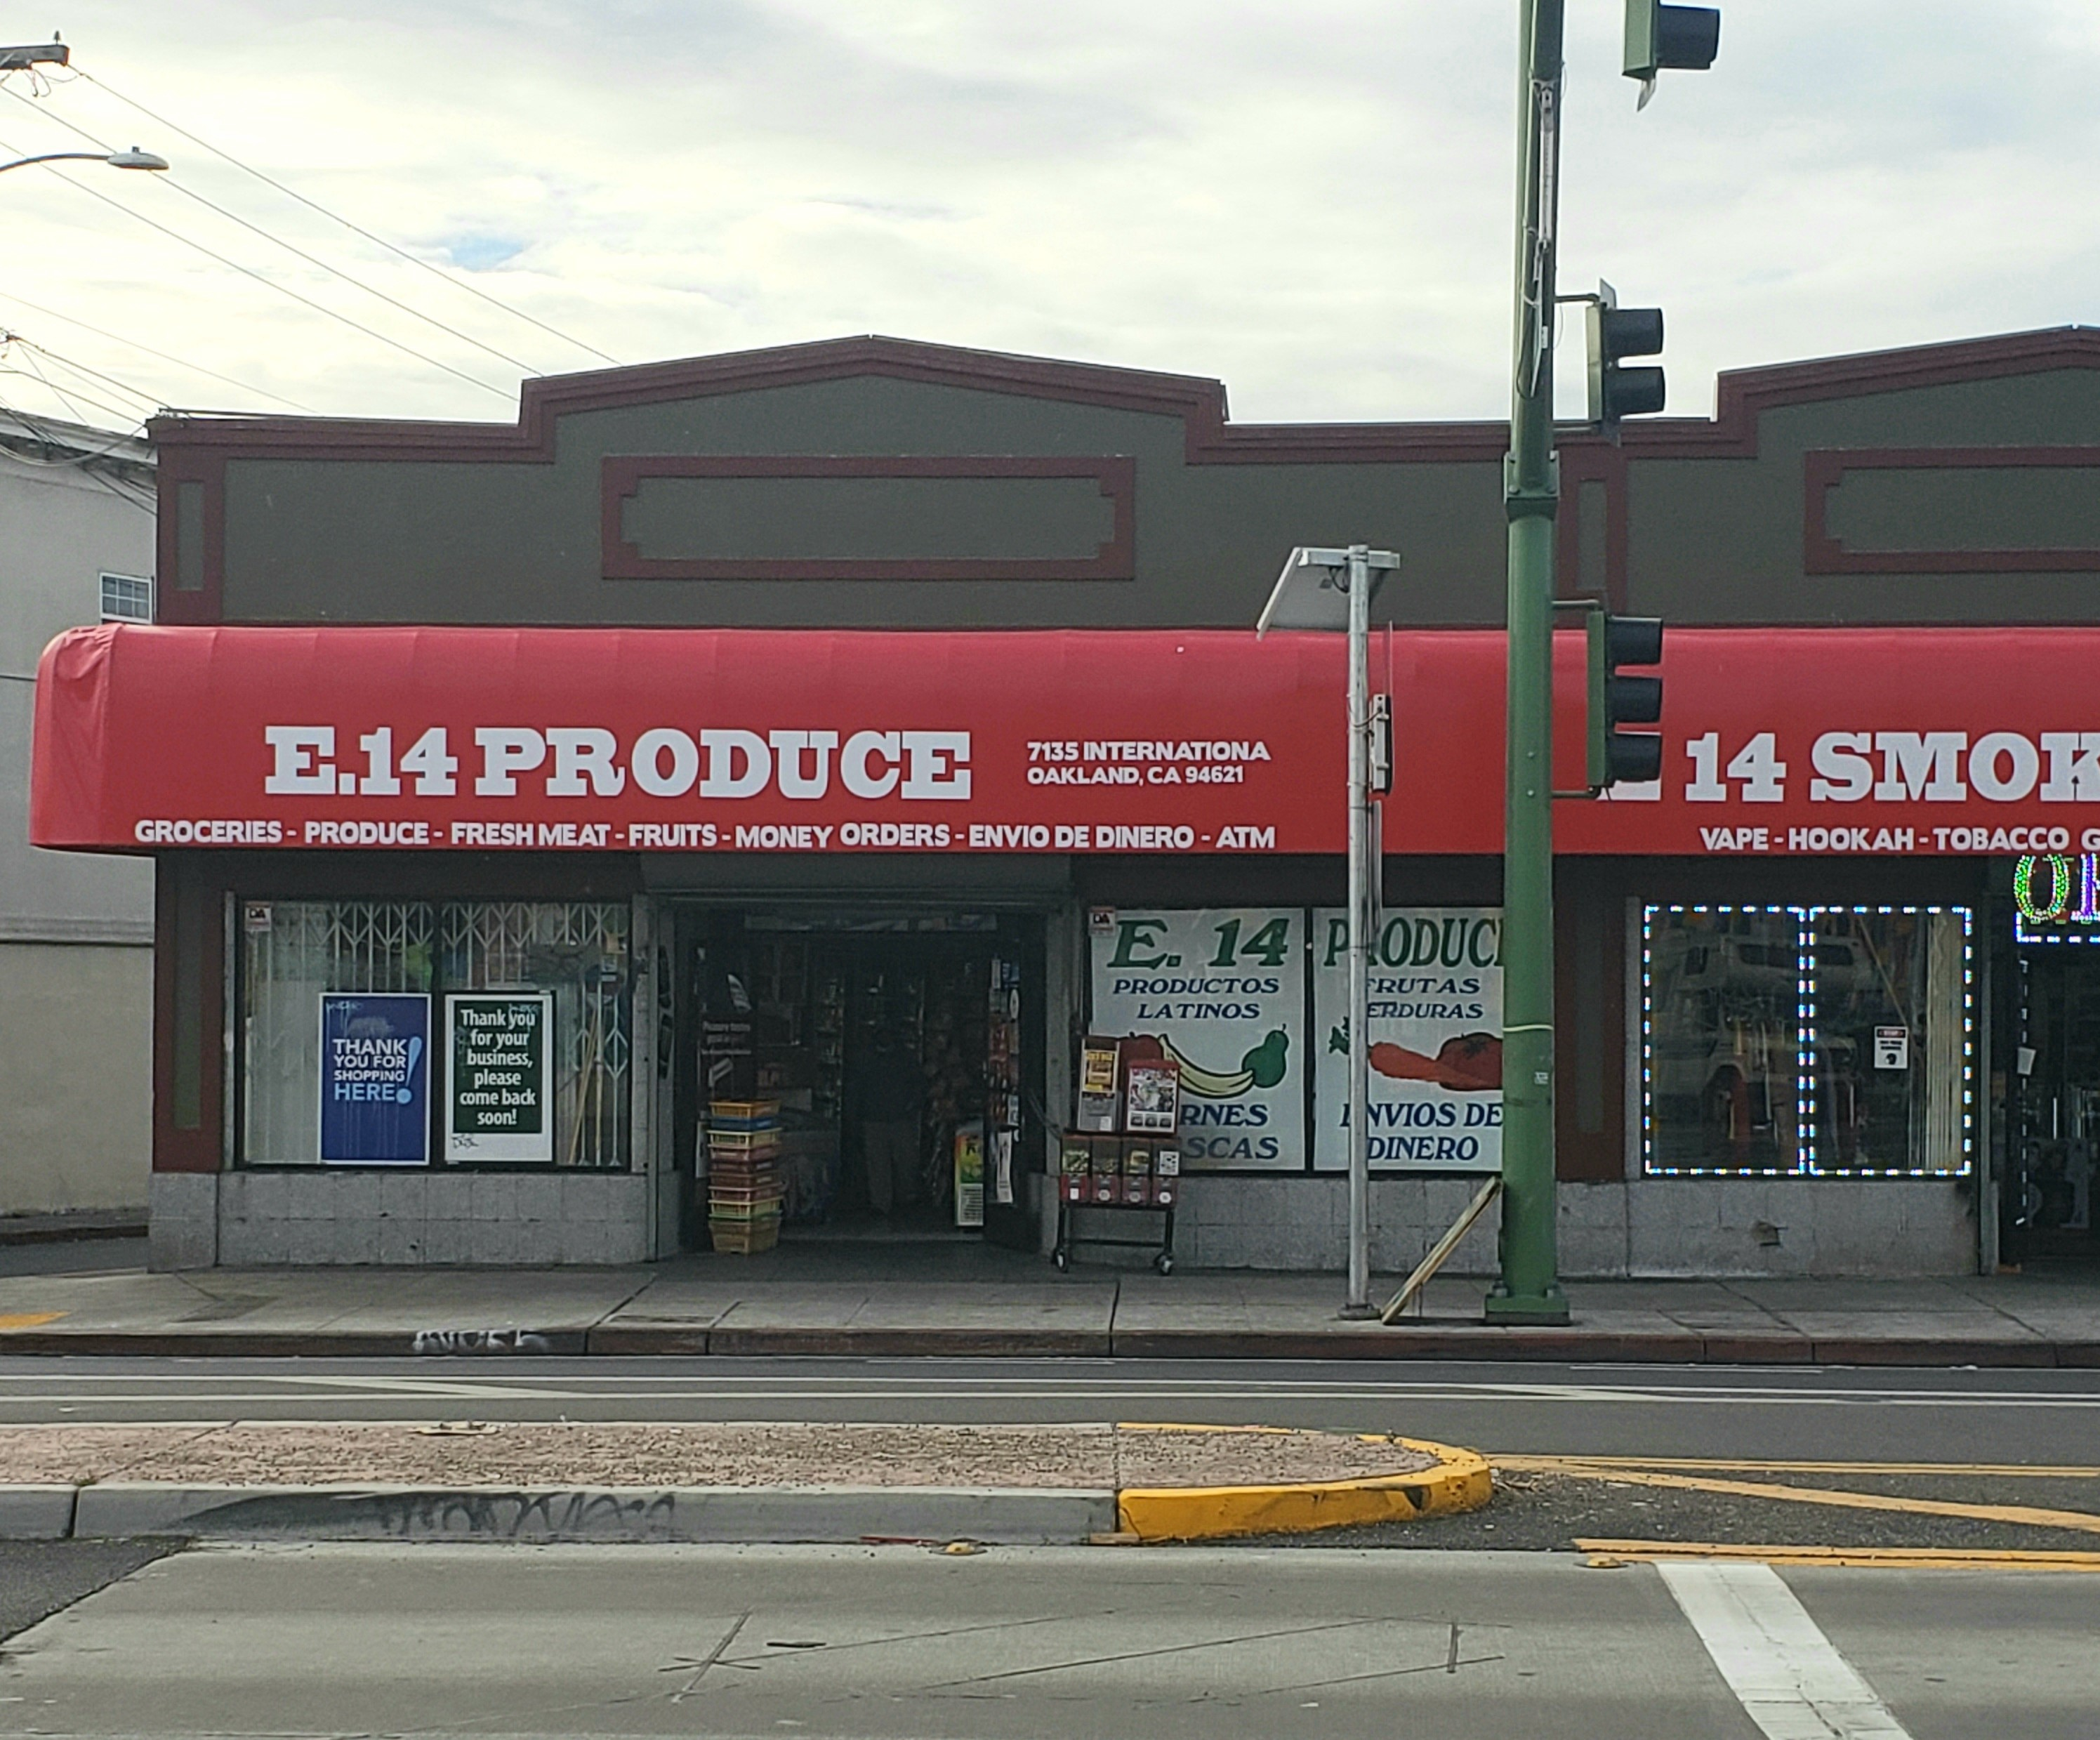 E. 14th Produce store front